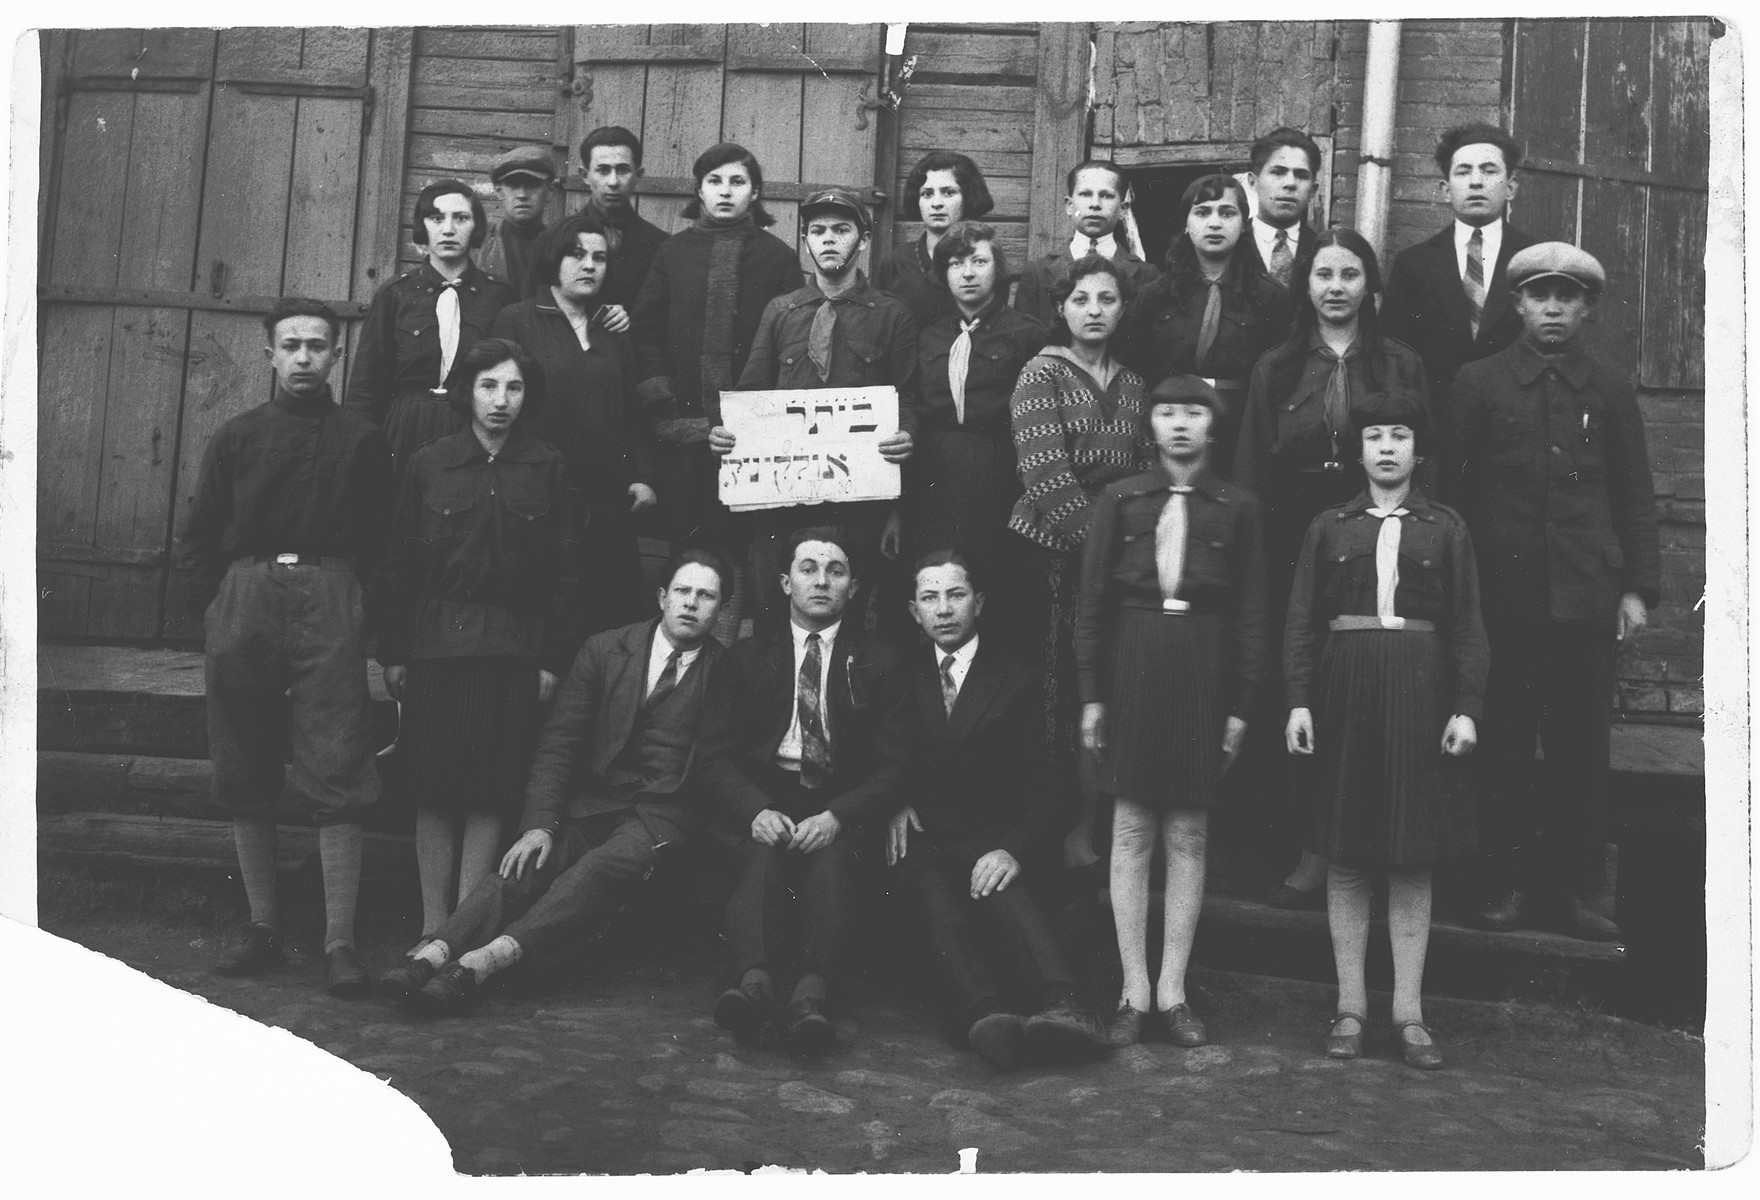 Group portrait of the members of the Zionist group Betar in Olkieniki (Valkininkai).